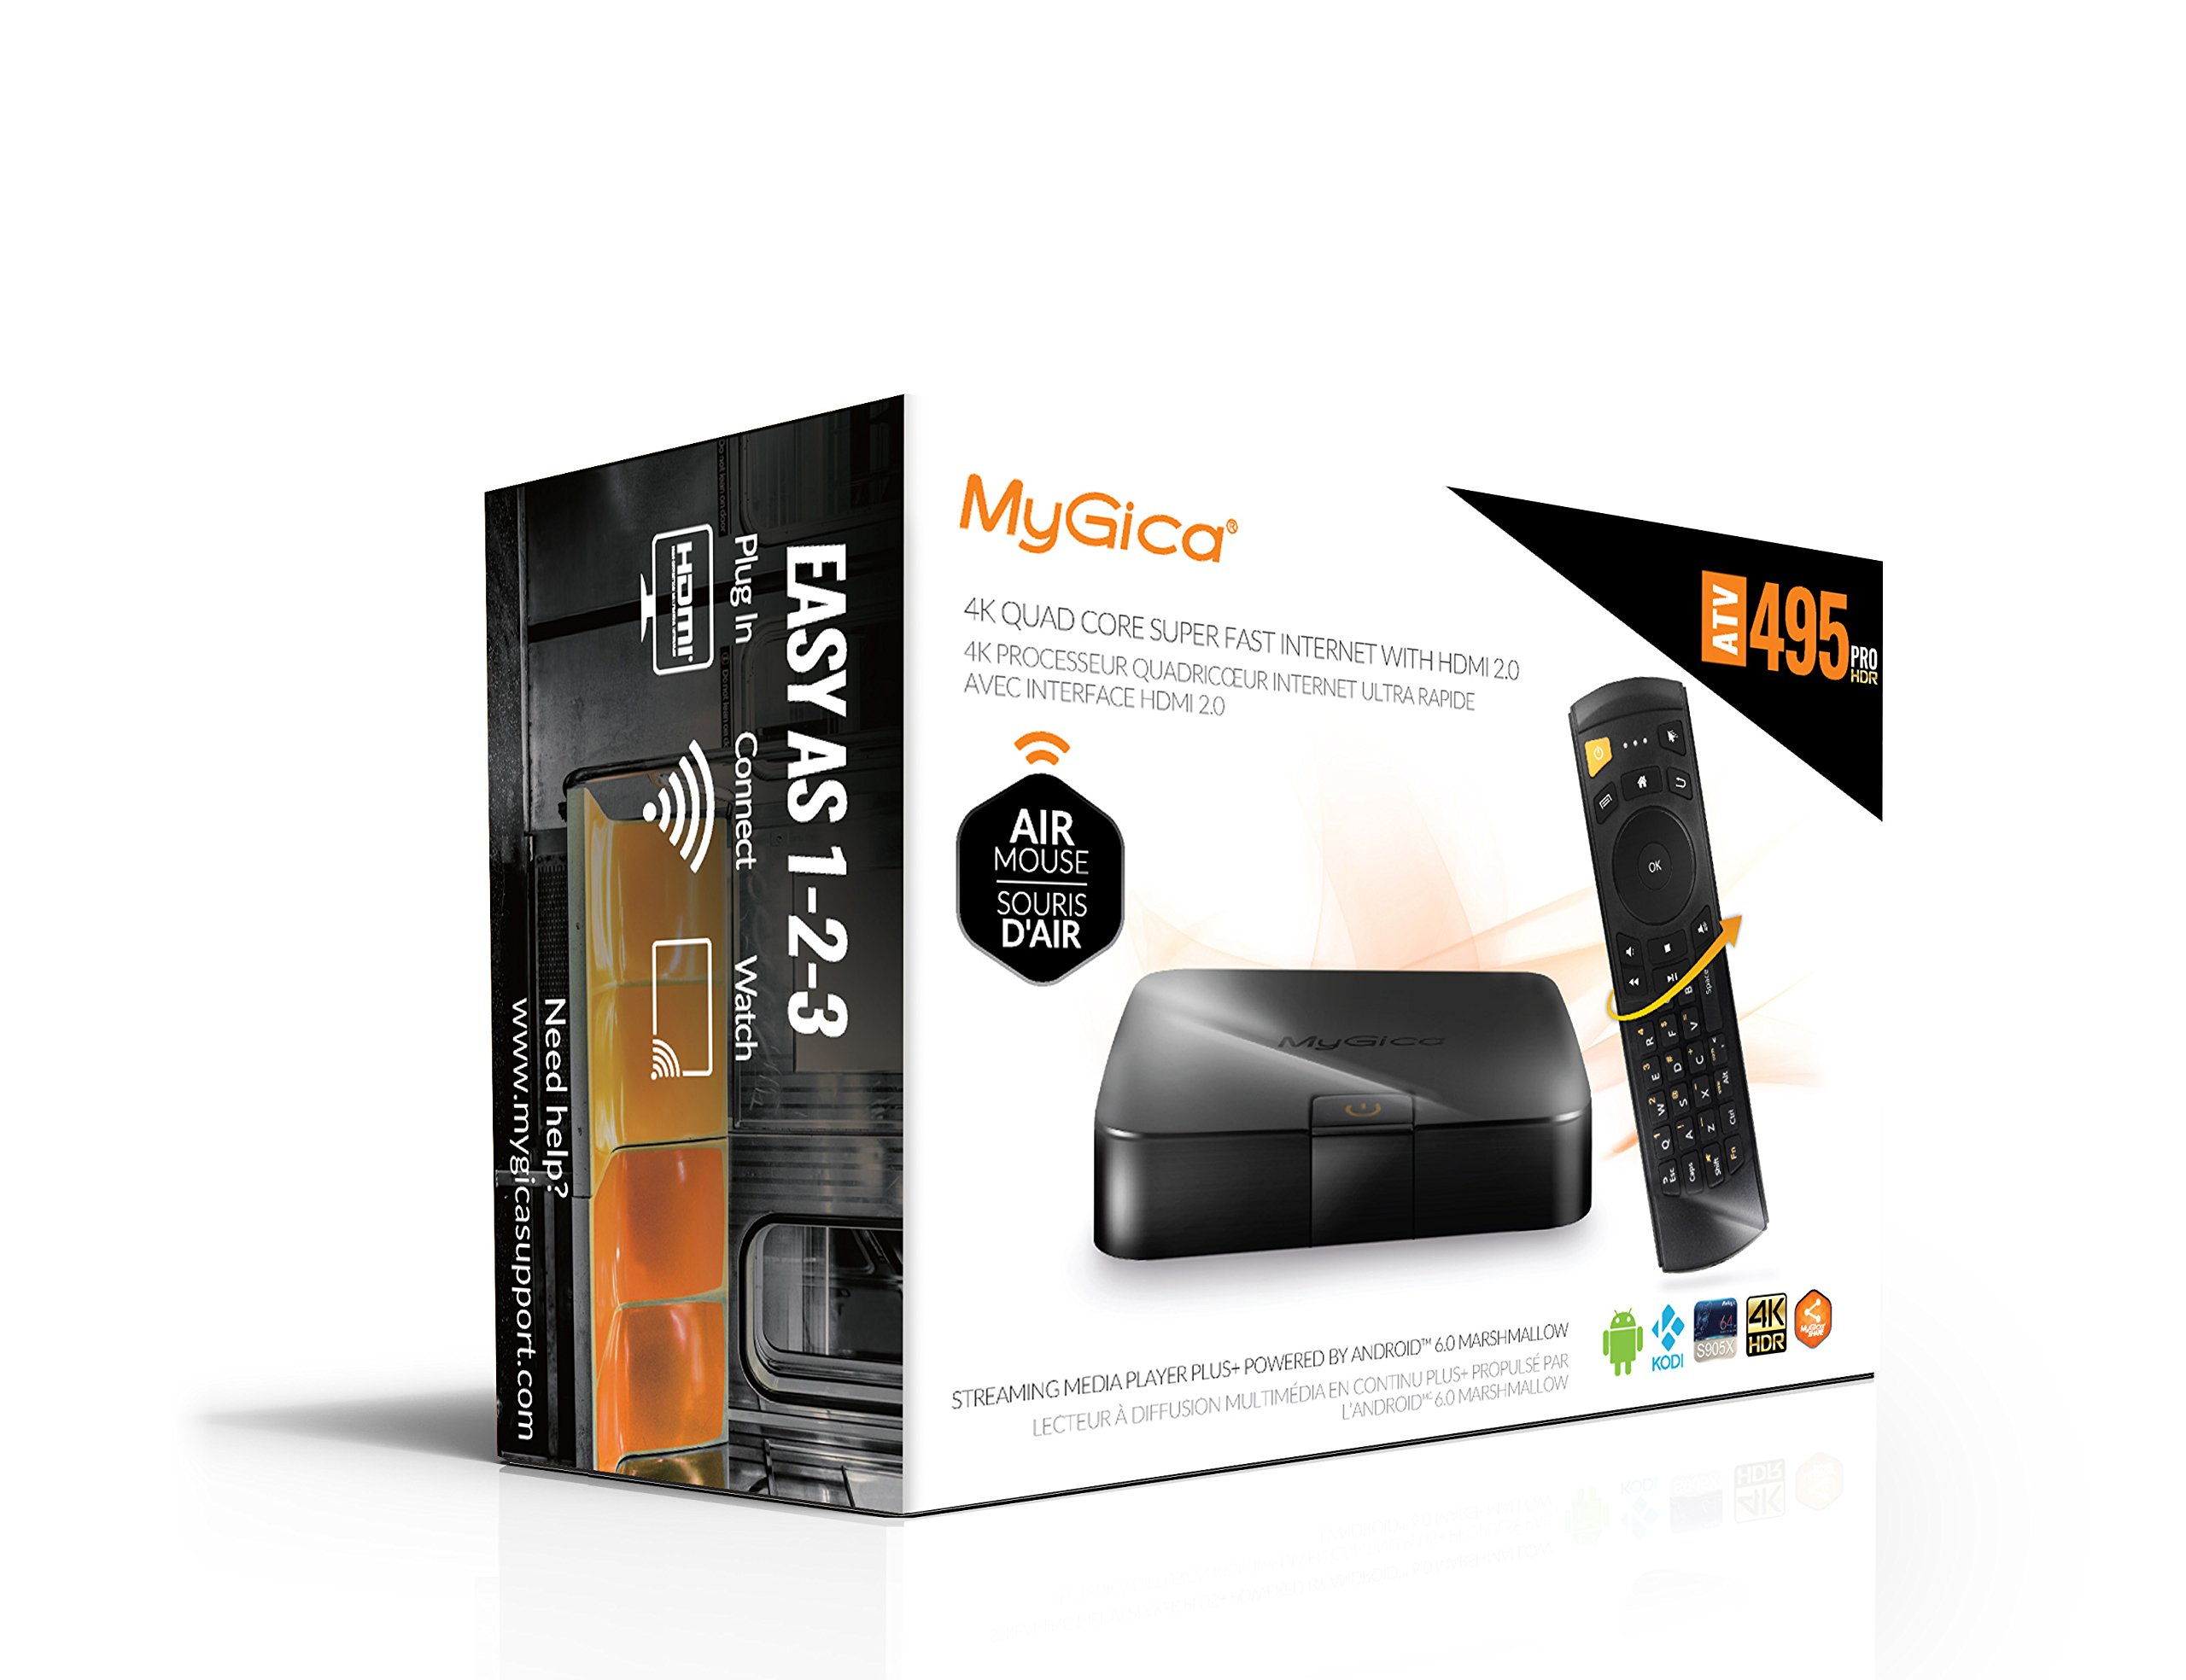 MyGica ATV 495Pro HDR | Android 6.0 Marshmallow Streaming Media Player | 4K Ultra HD Video | Dual Band AC Wi-Fi | KR-41 Air Keyboard Remote Control - 2GB RAM / 8GB Memory